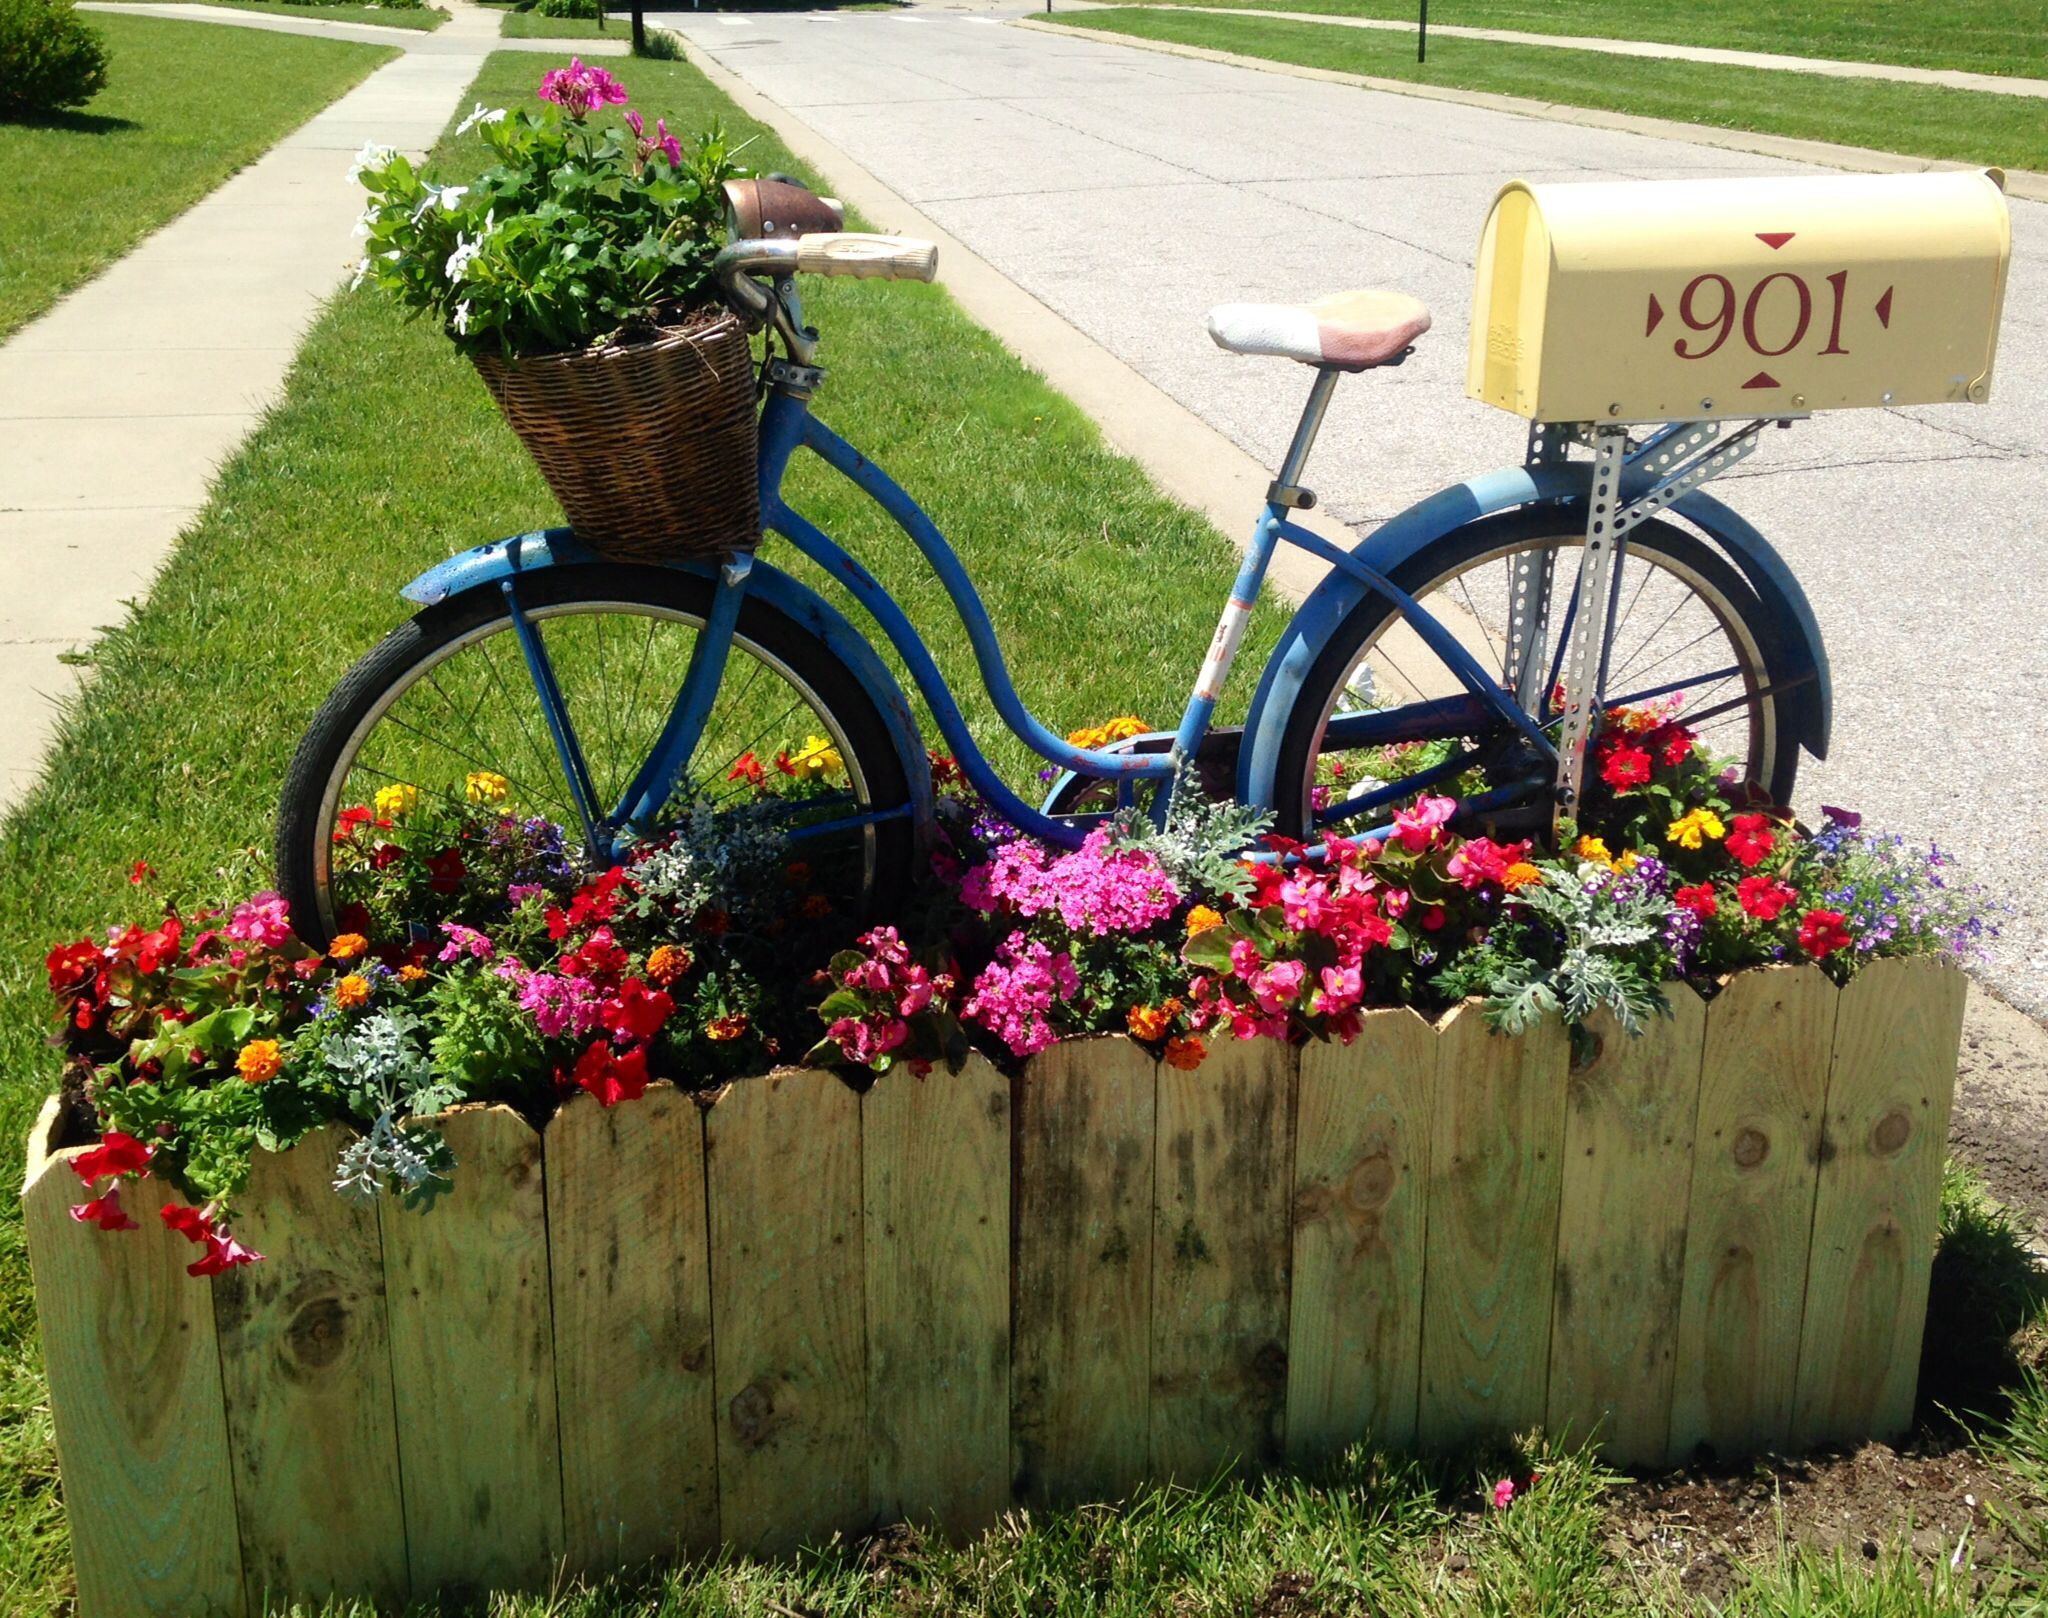 High Quality Fun Use Of A Vintage Bike   Planter + Mailbox!